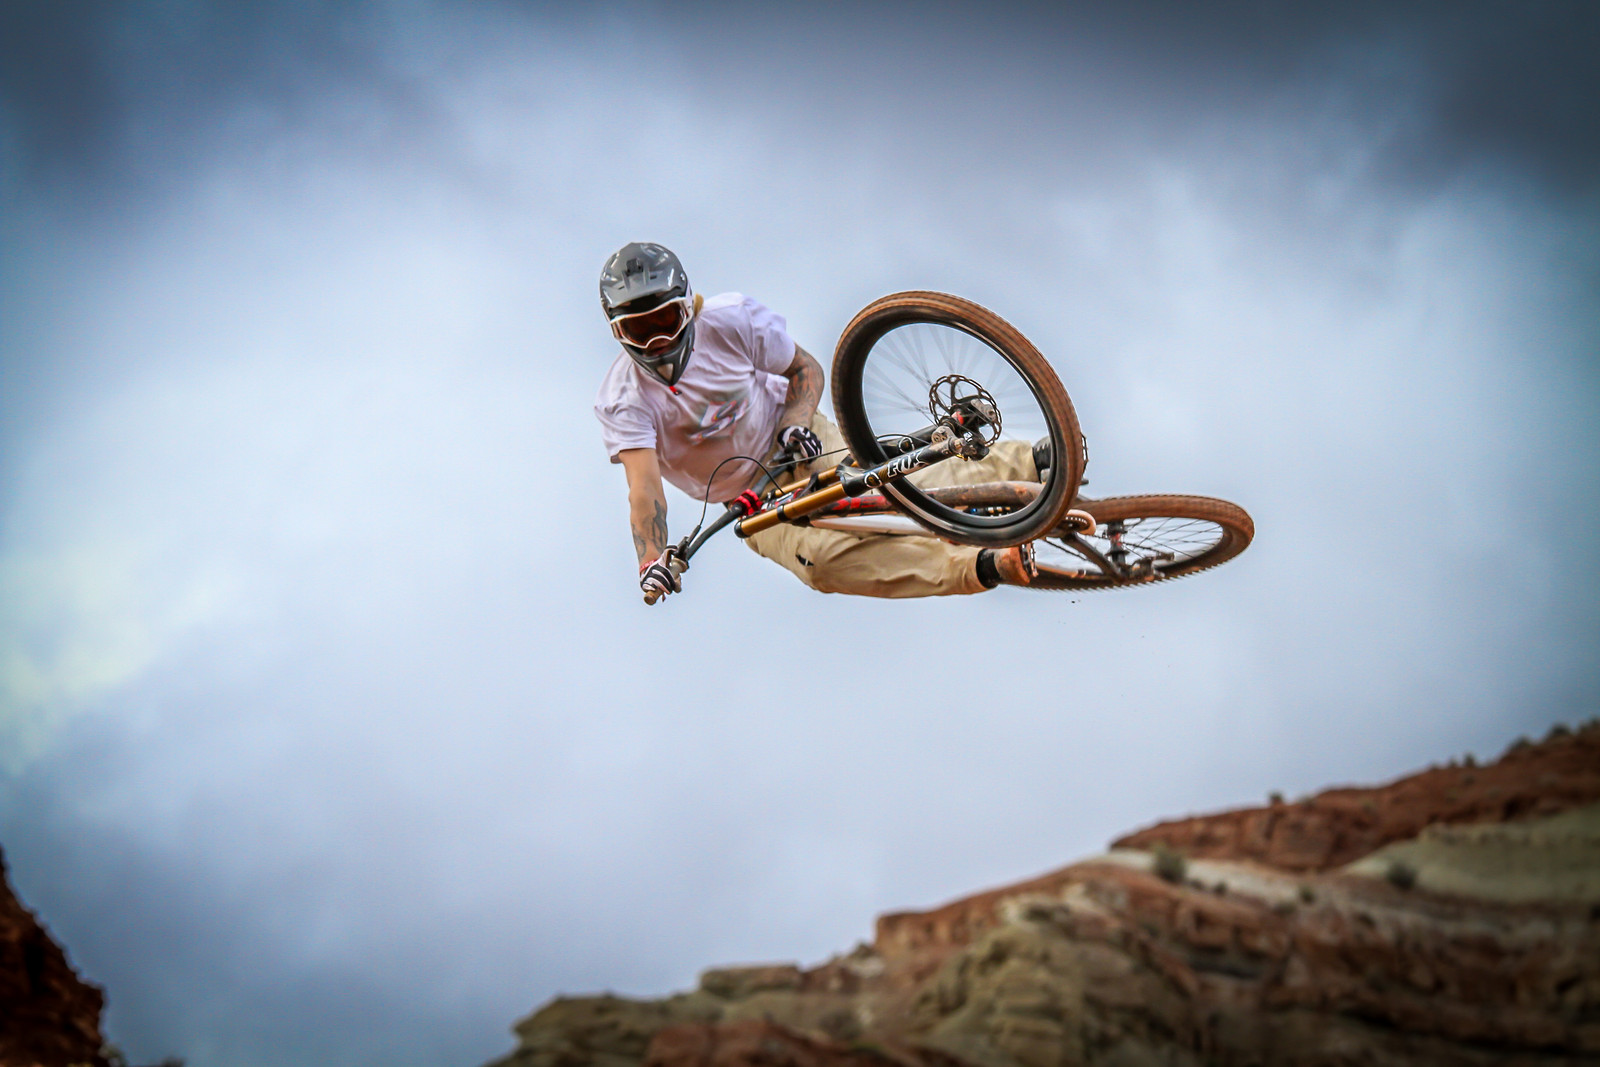 Mads (1 of 1) - Malcolm Mclaws - Mountain Biking Pictures - Vital MTB